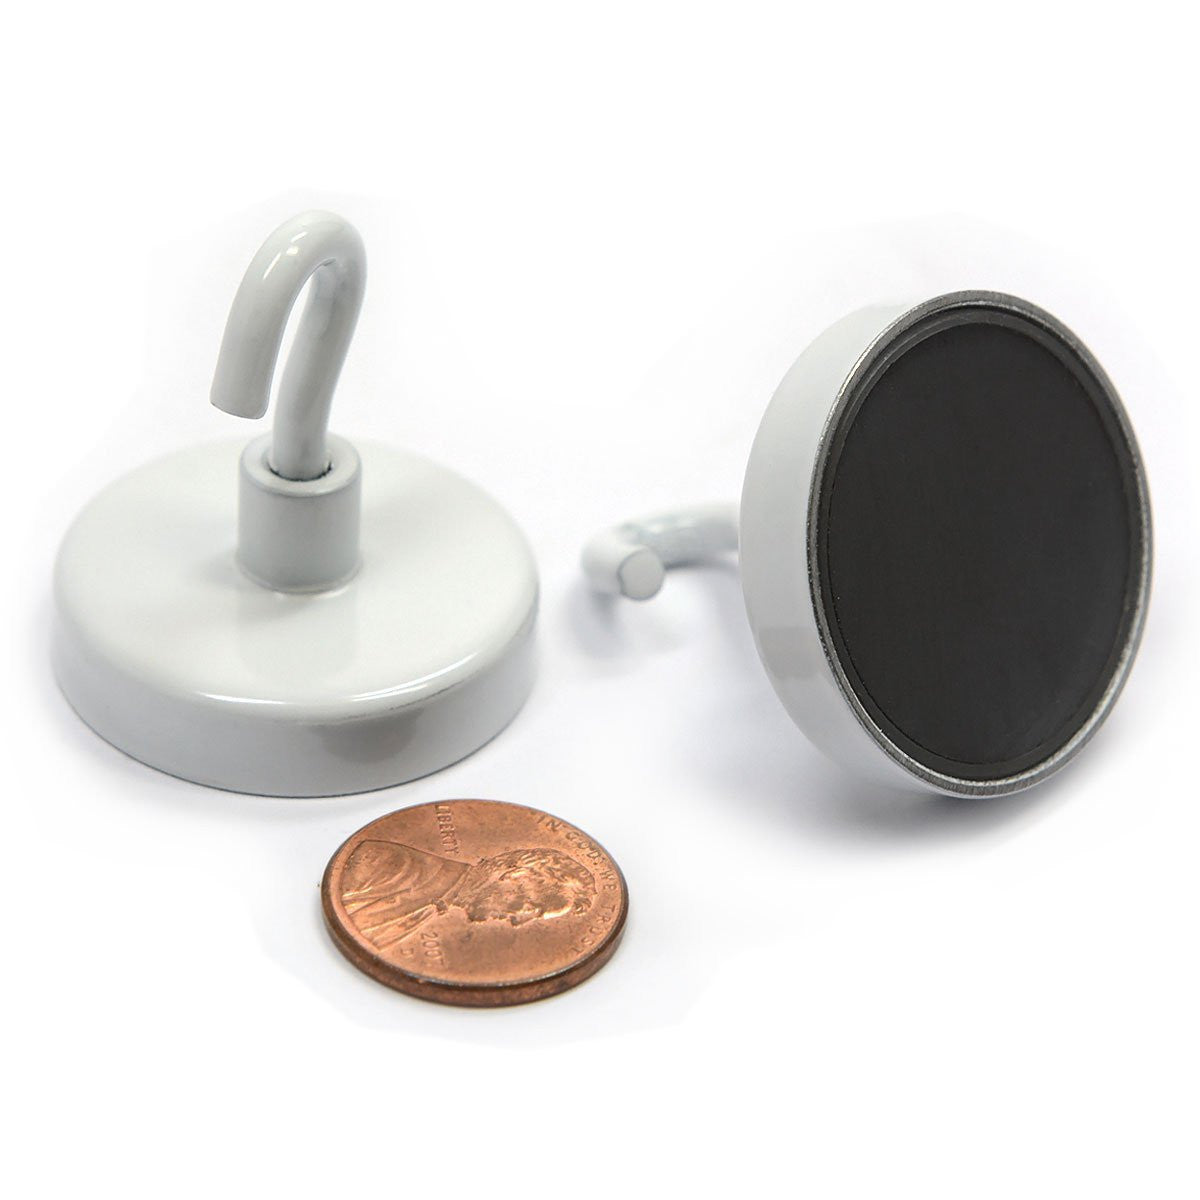 "Stateroom - Magnet Hook 1 1/4"" in Diameter with 10 LBS Holding Power"